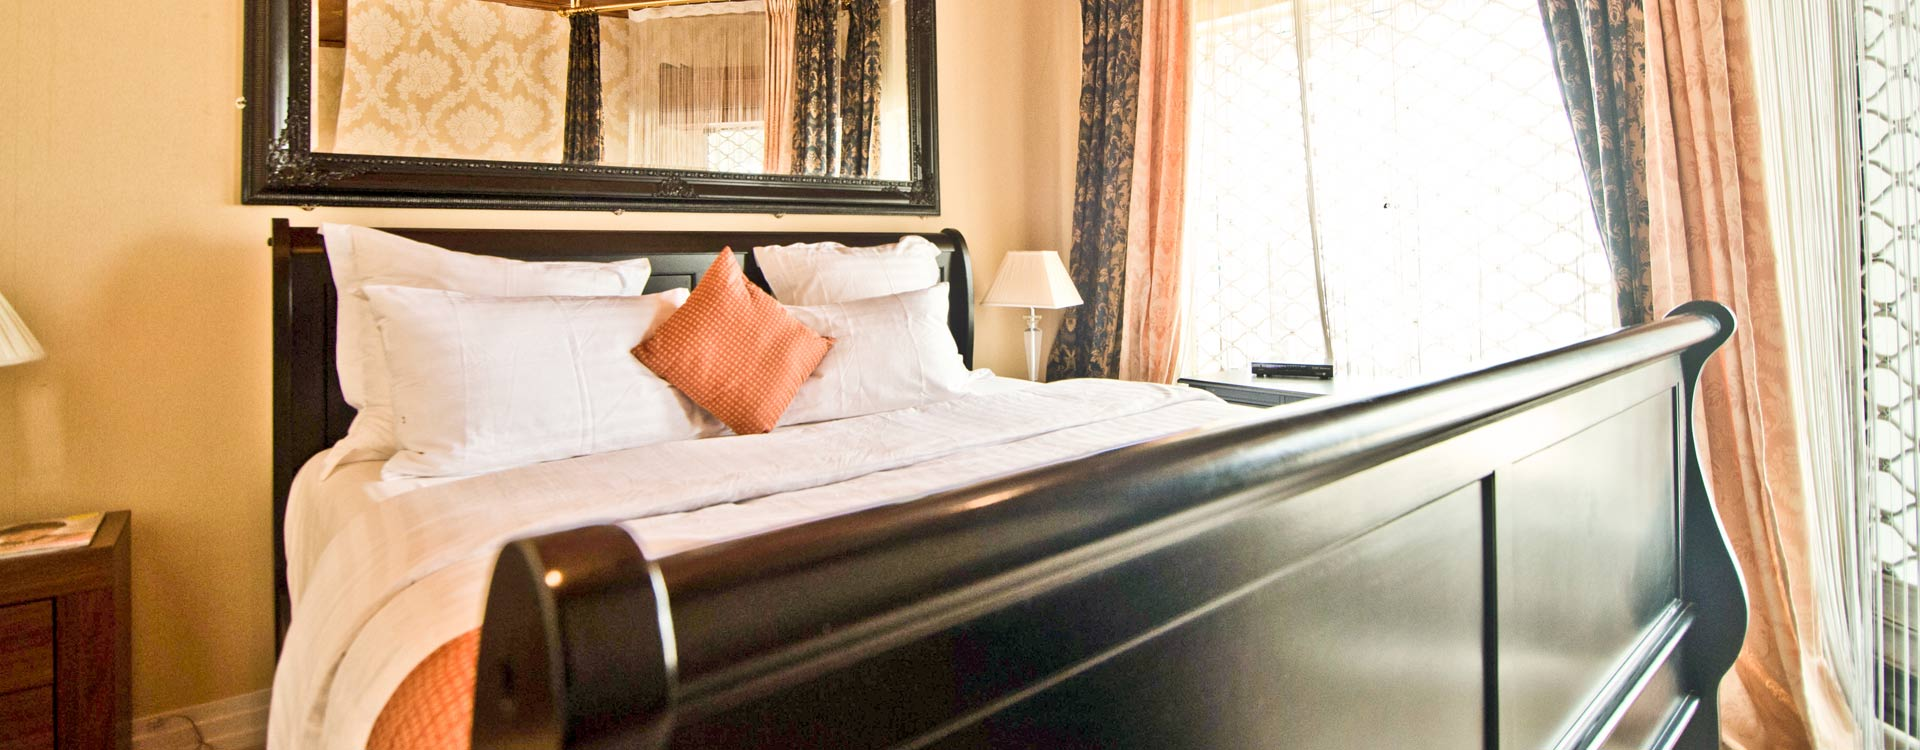 Saddle Hill Ranch & Resort in Bamenda Cameroon - Exotic Bedrooms - Quality Linens